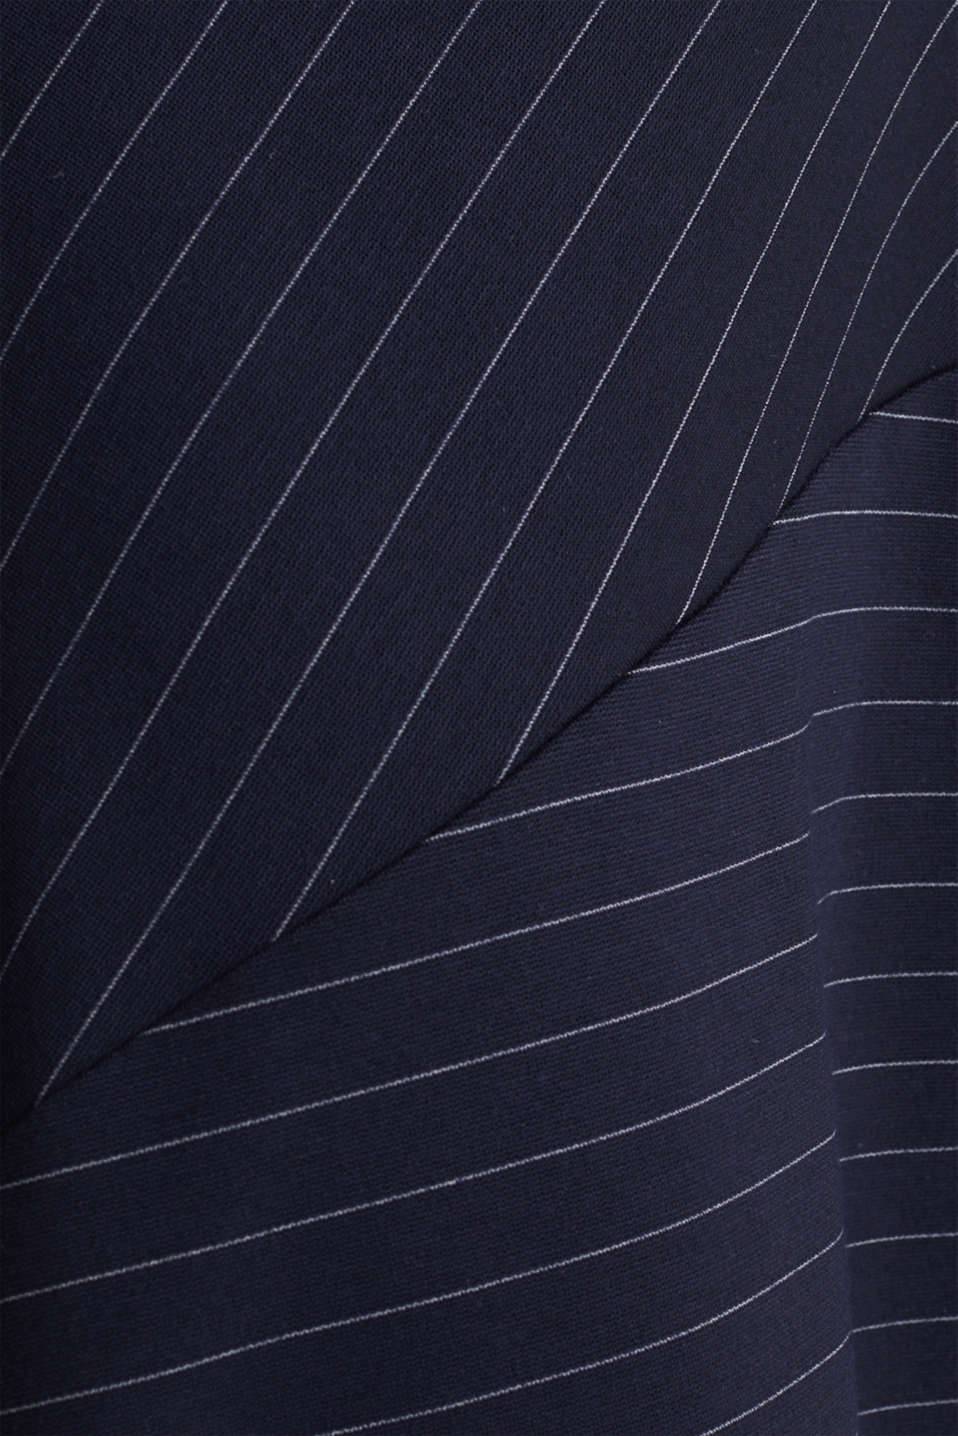 Stretch jersey skirt with pinstripes, NAVY, detail image number 4